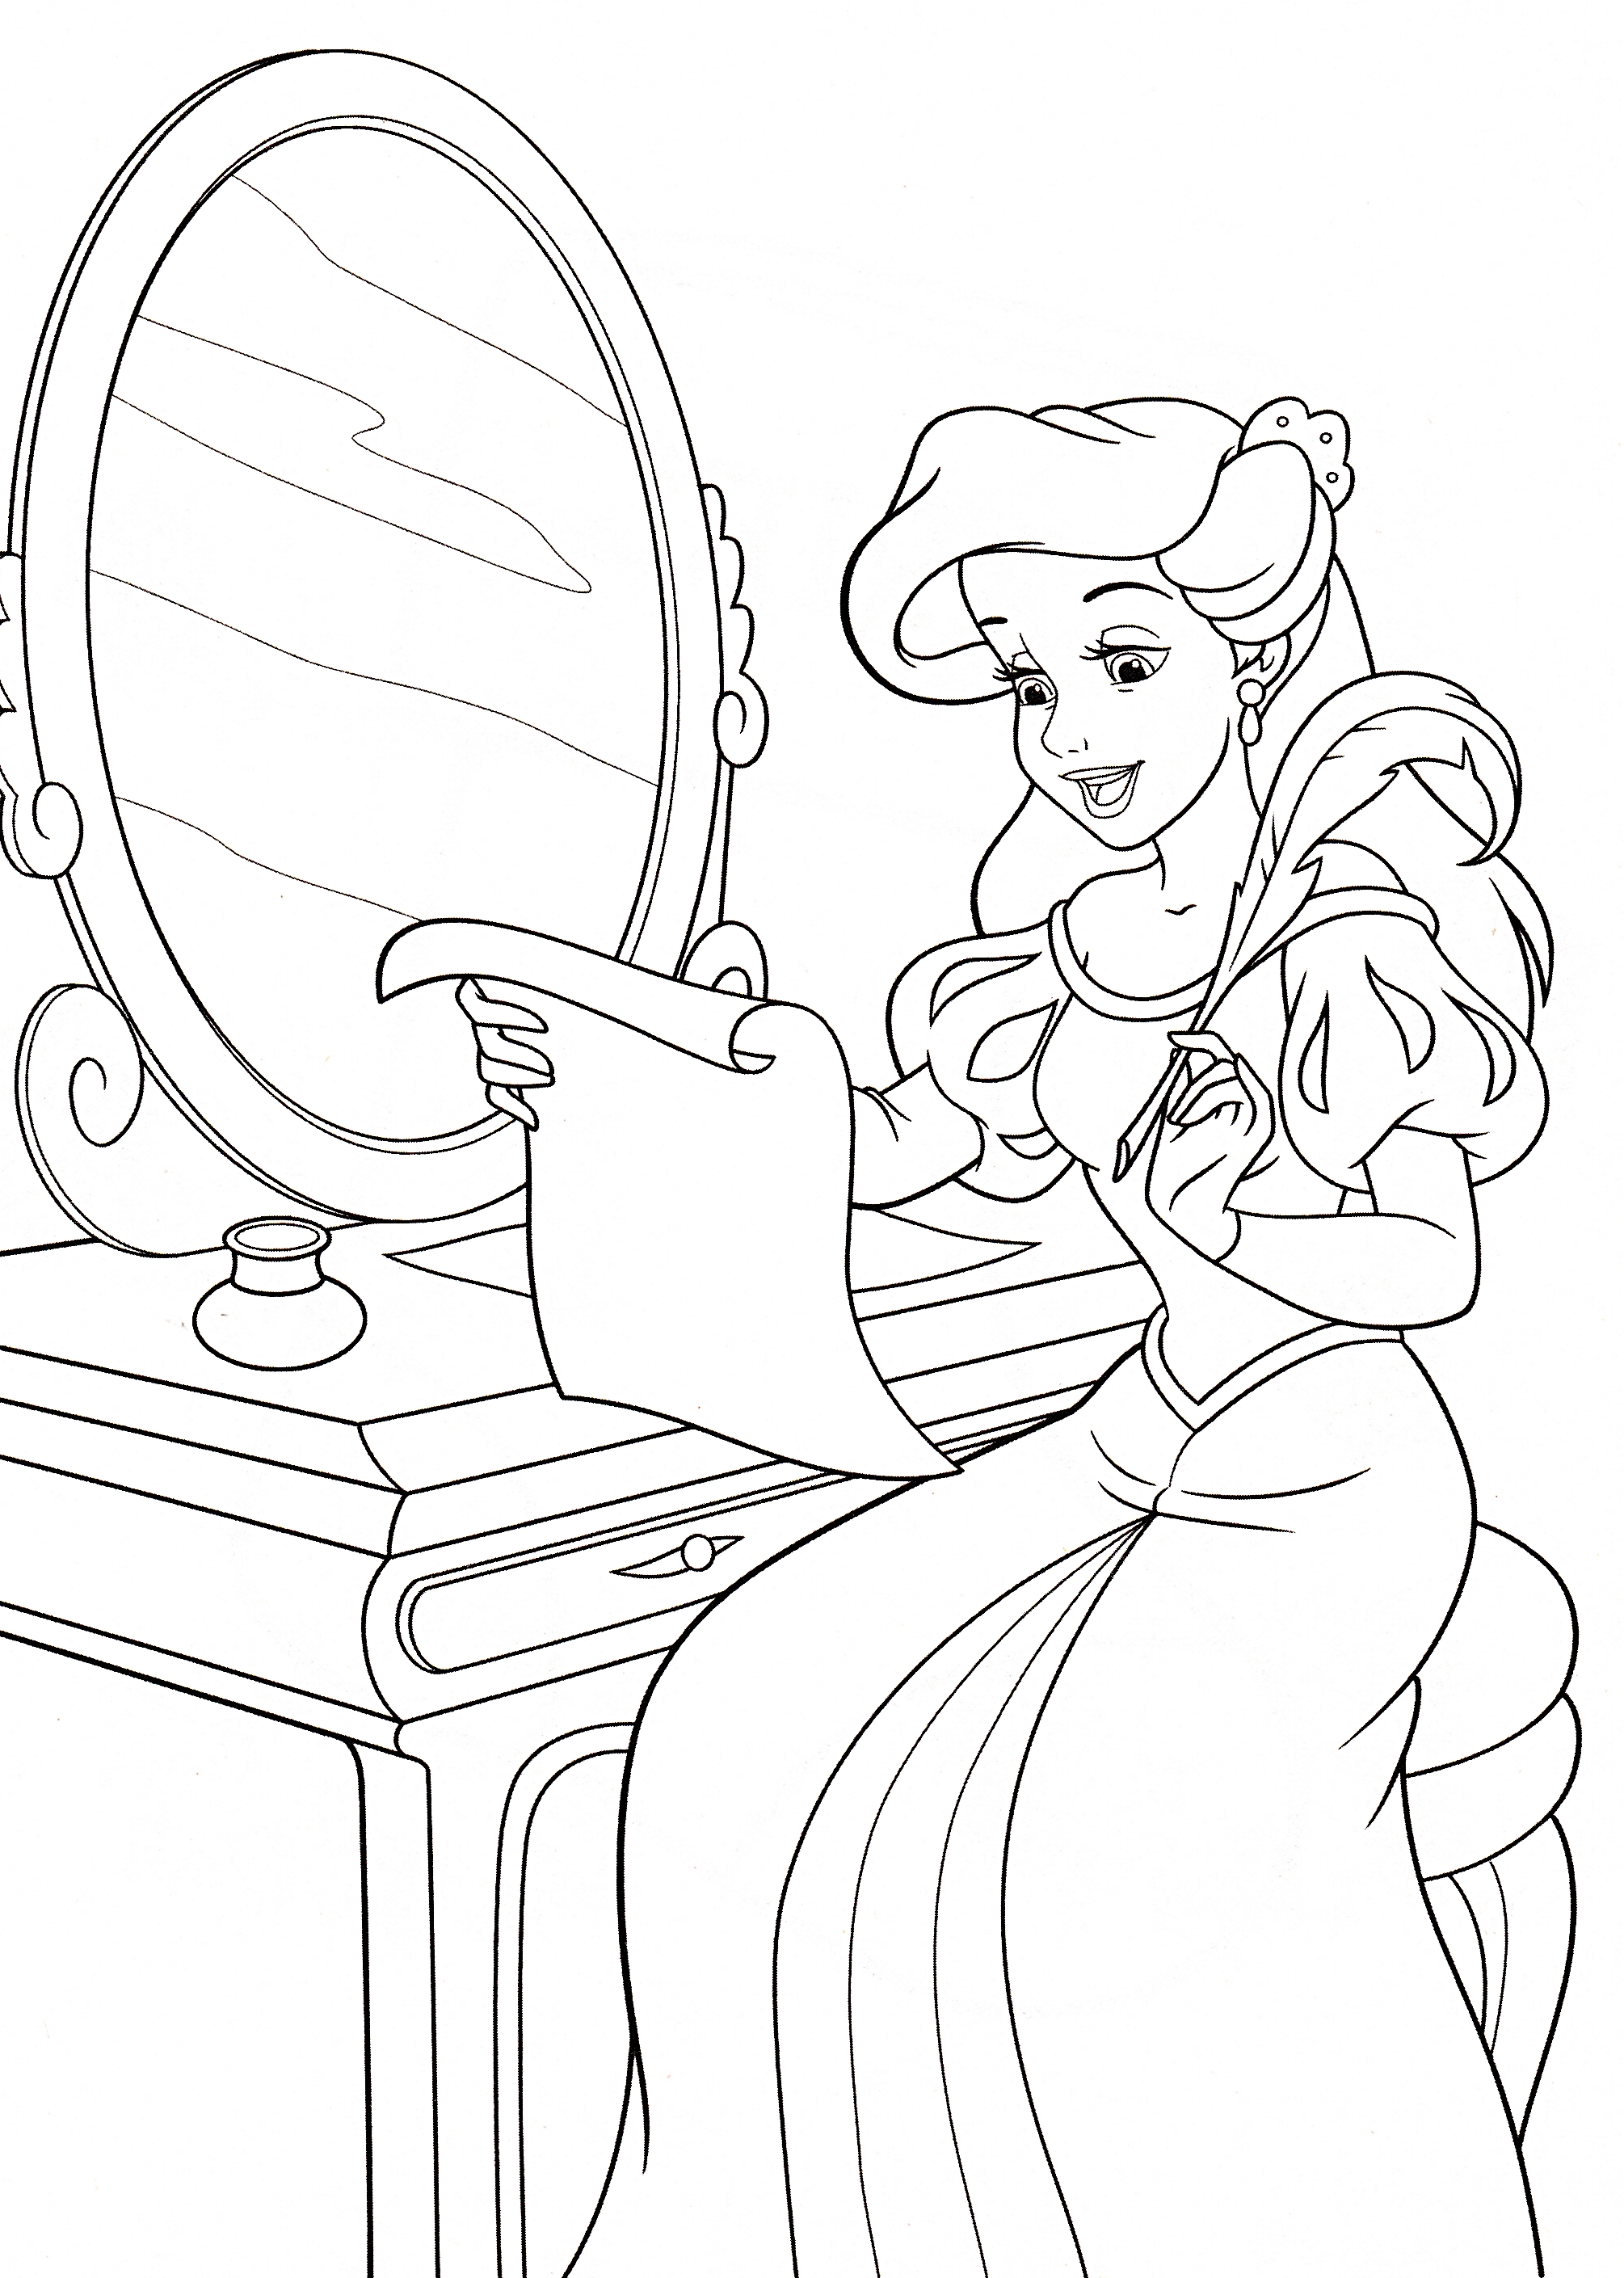 Walt Disney Coloring Pages - Princess Ariel - Walt Disney ...